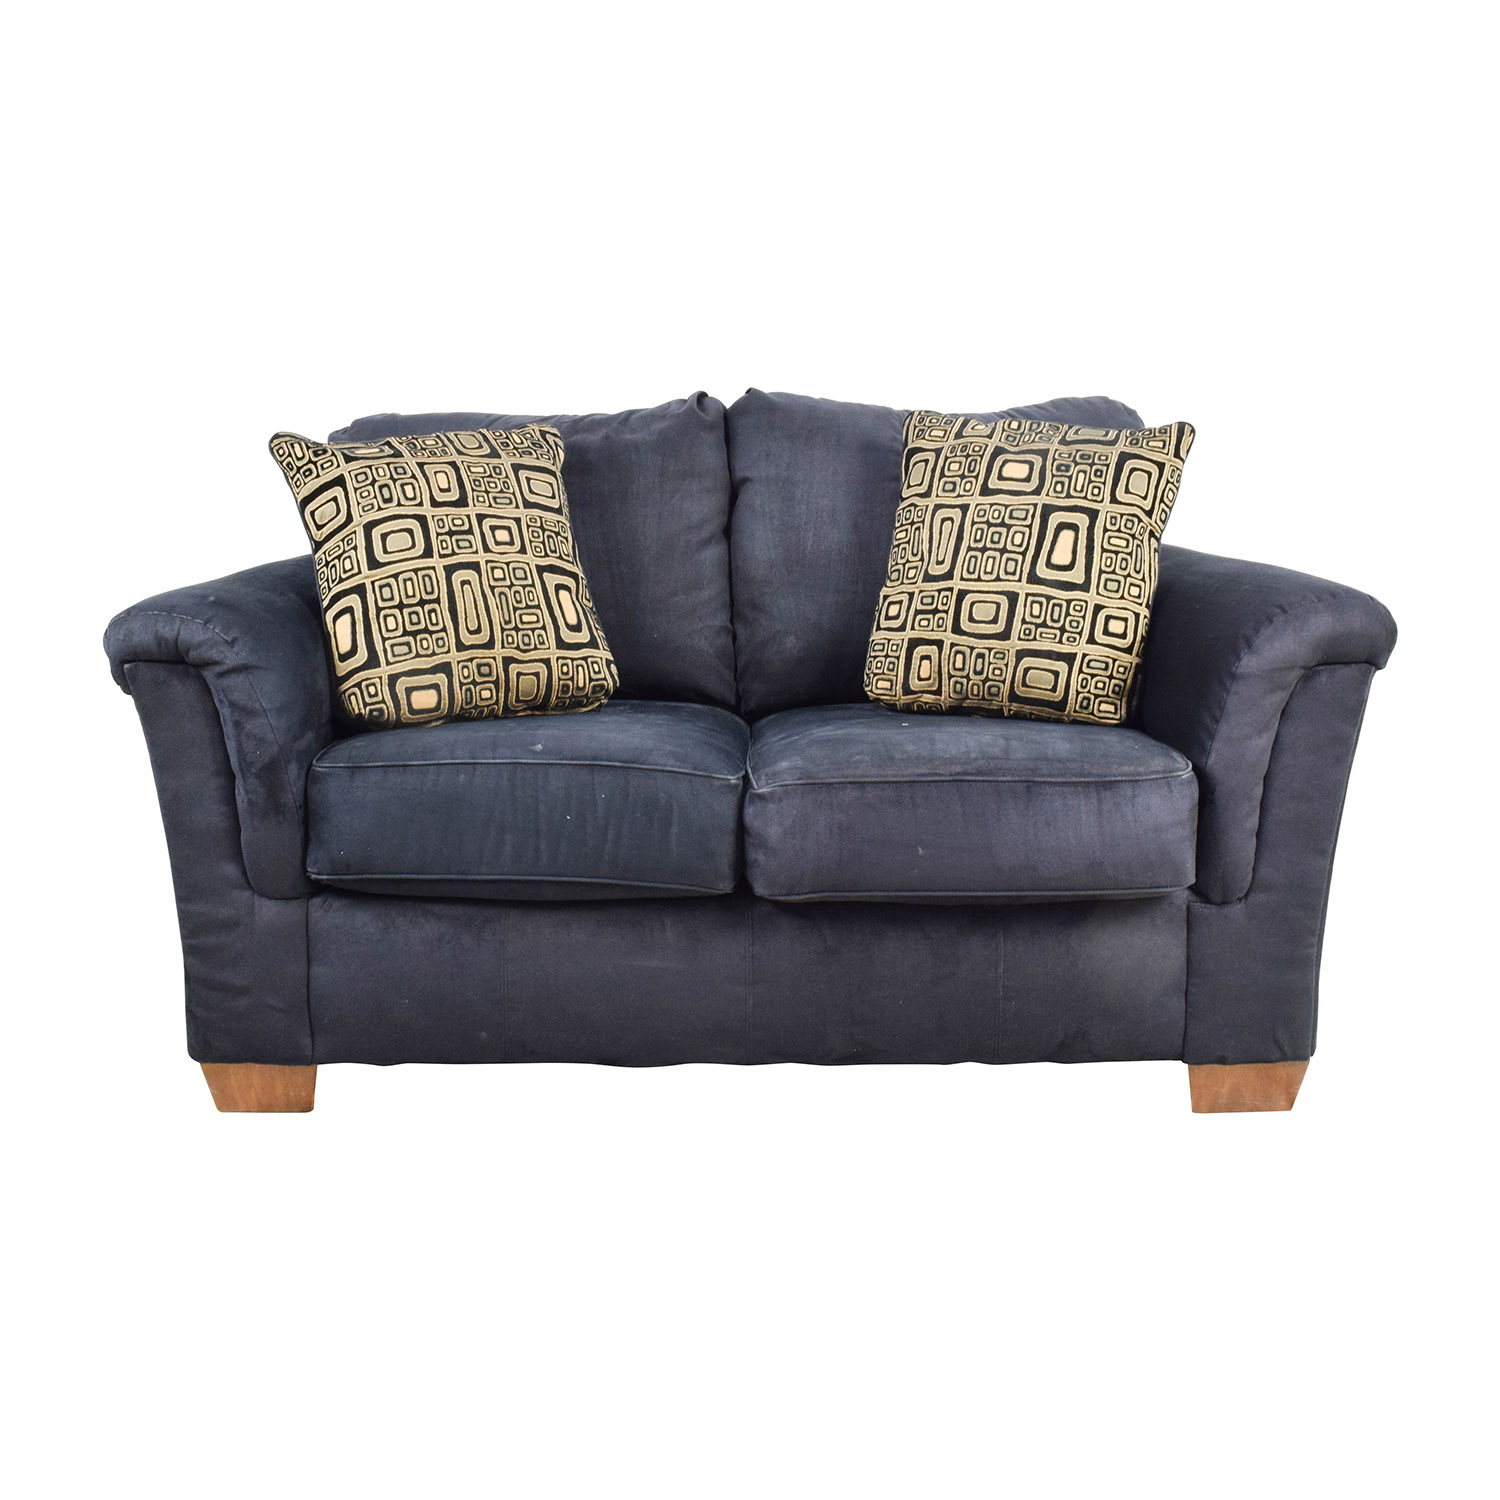 Ashley Furniture Ashley Furniture Janley Loveseat Nyc